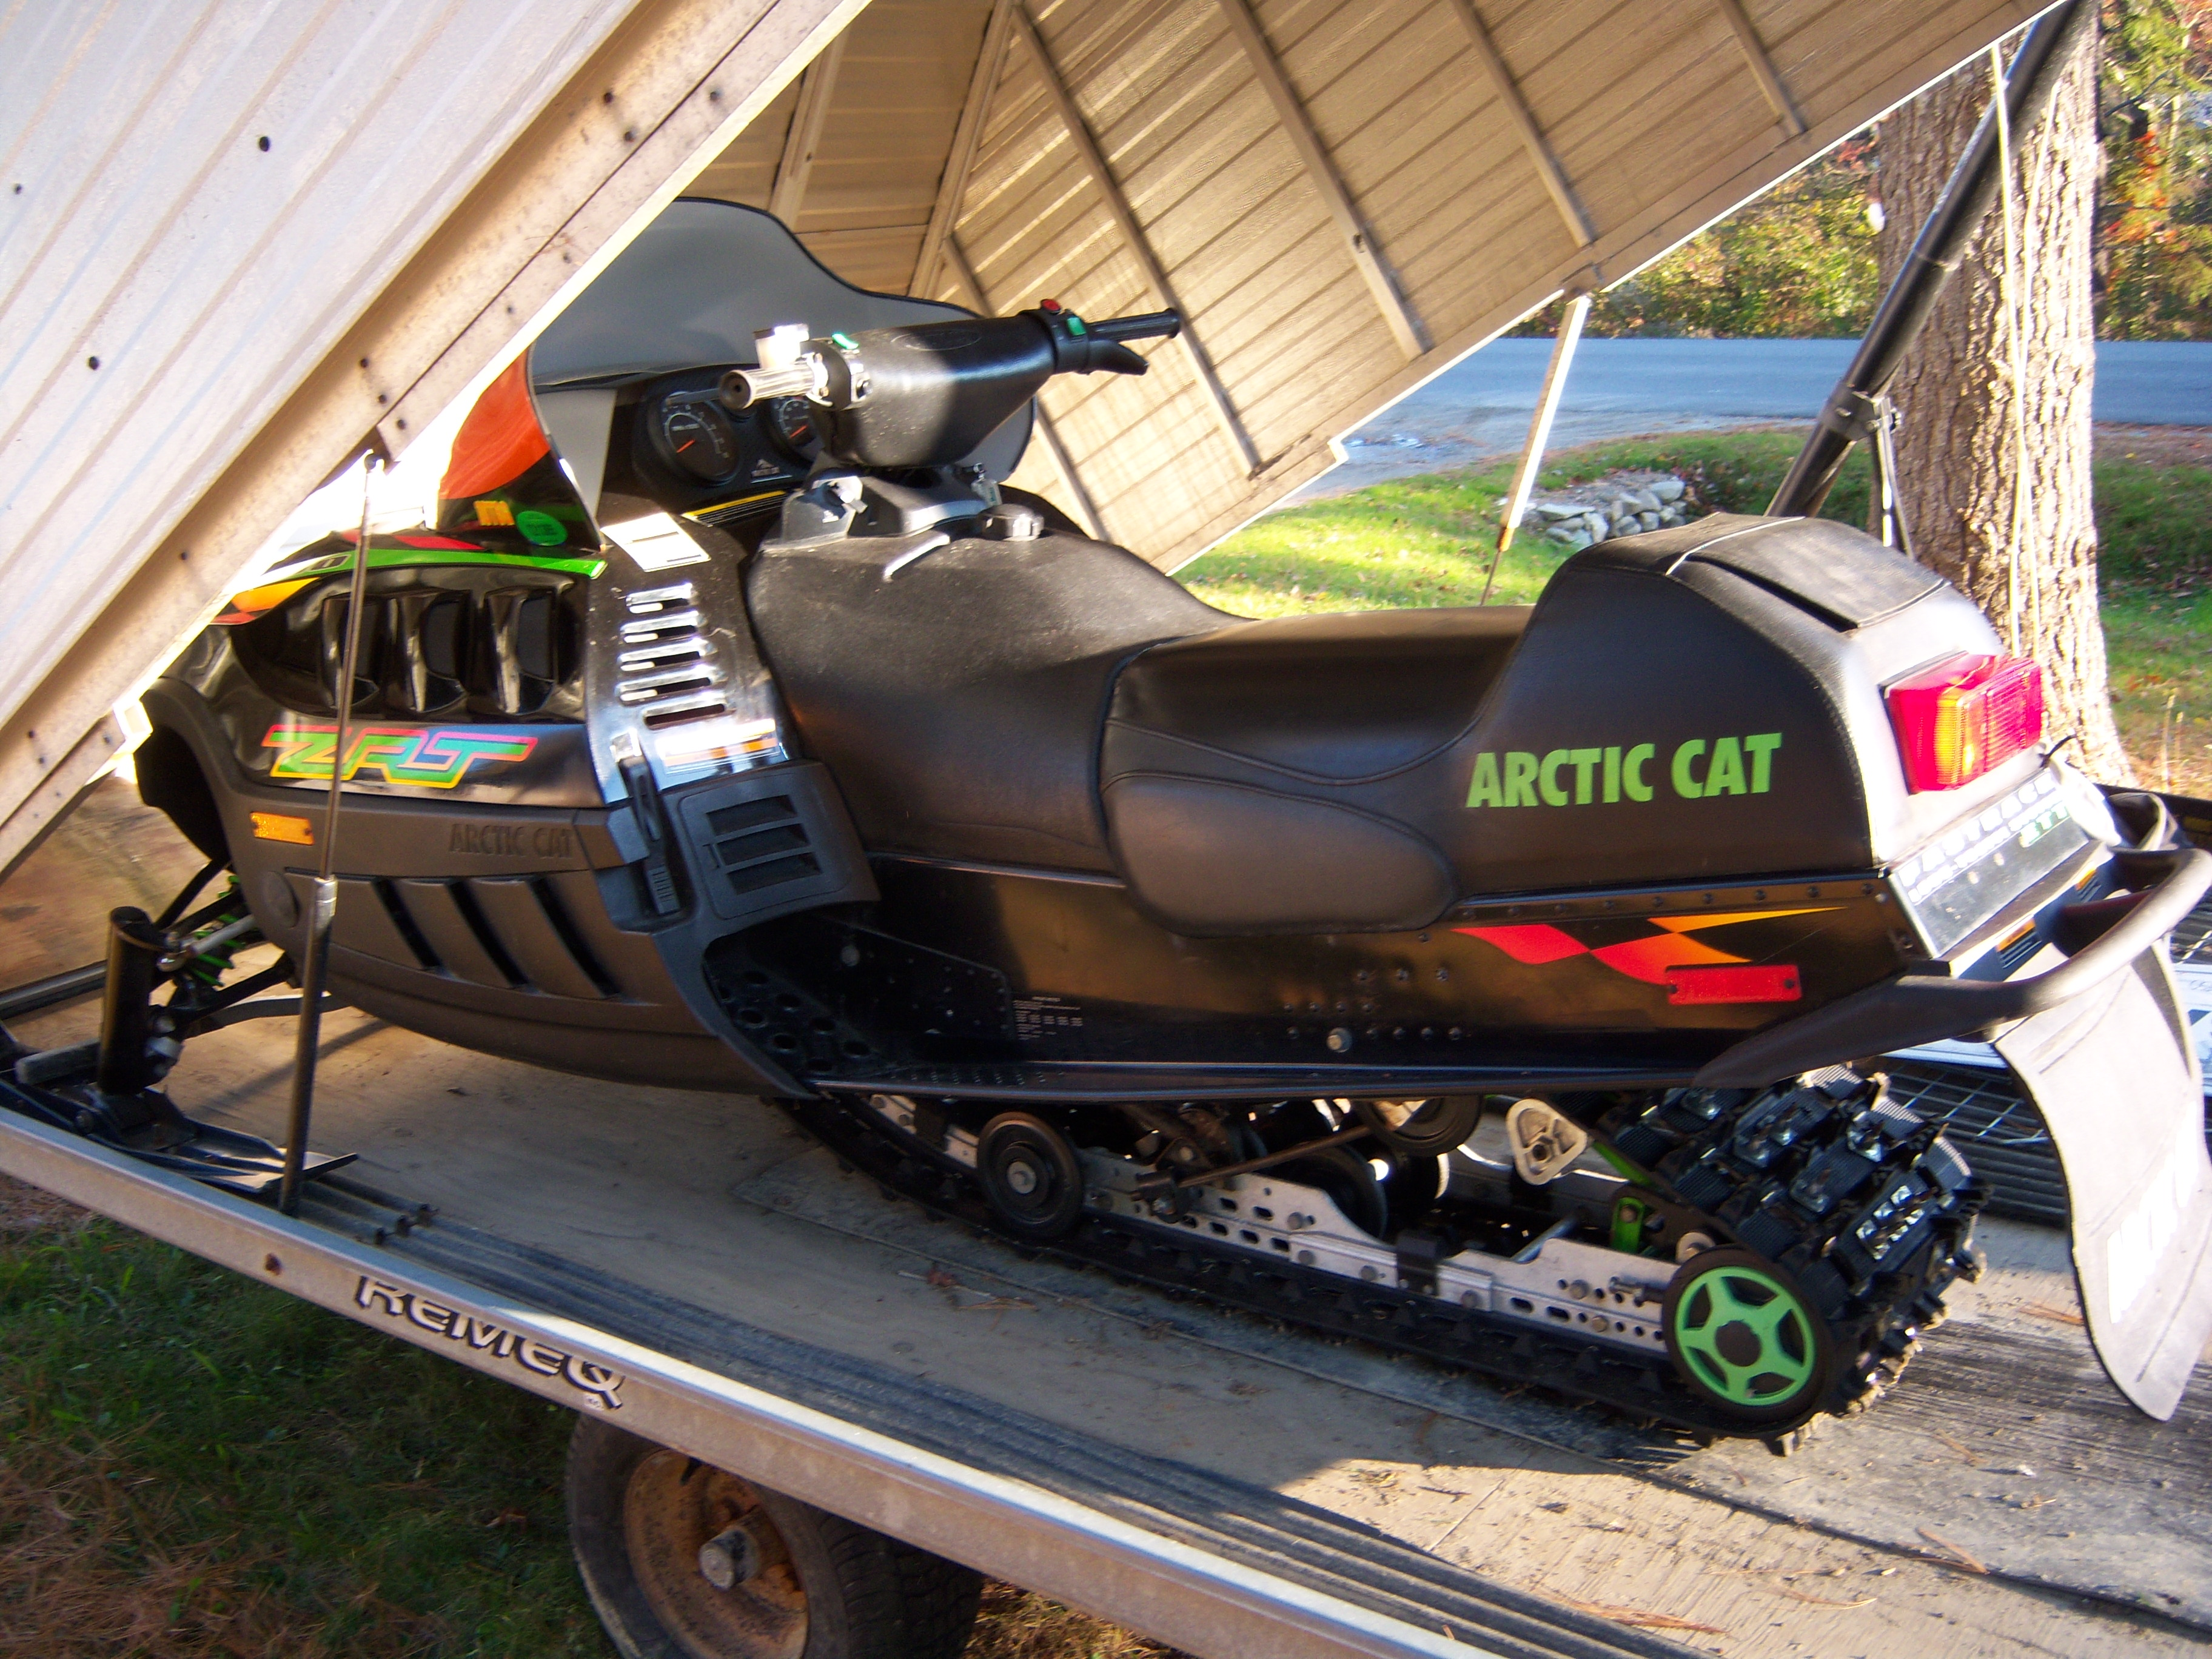 2000 Arctic Cat 600 The Best 2018 Wiring Diagram Zrt New 2017 Bearcat Lt Es Snowmobiles In Barrington Nh